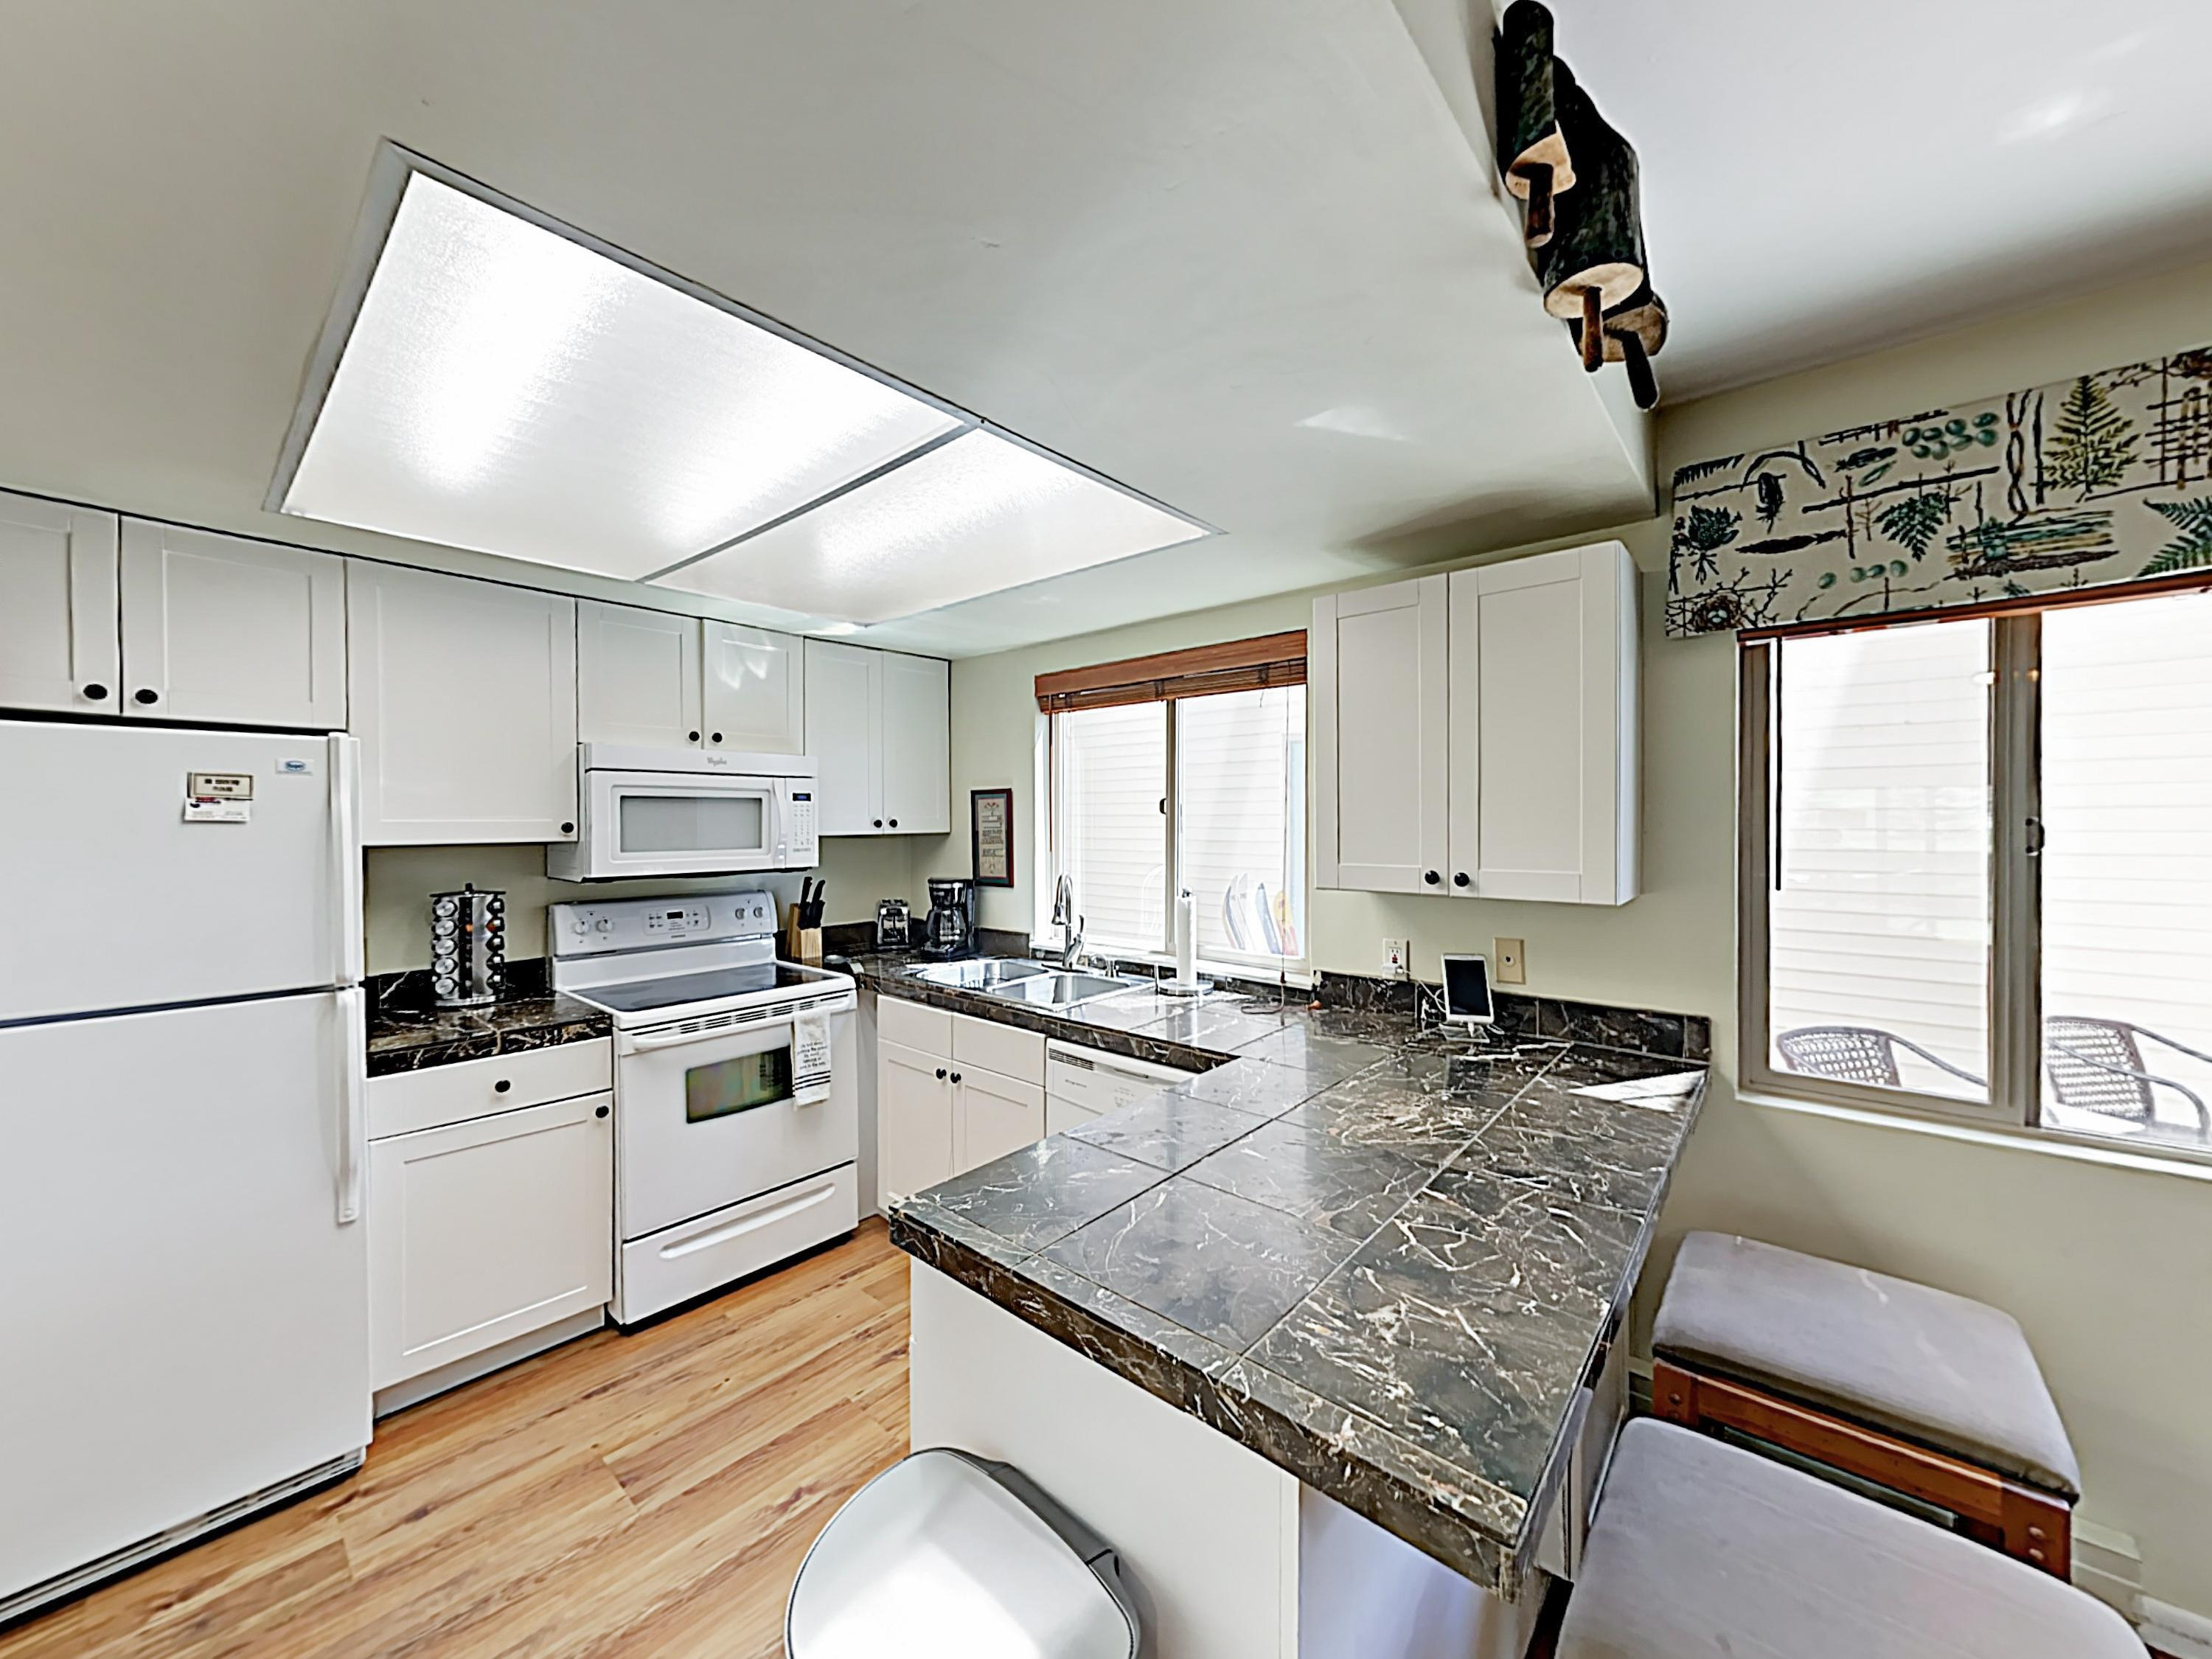 Granite countertops and quality all-white appliances outfit the kitchen.